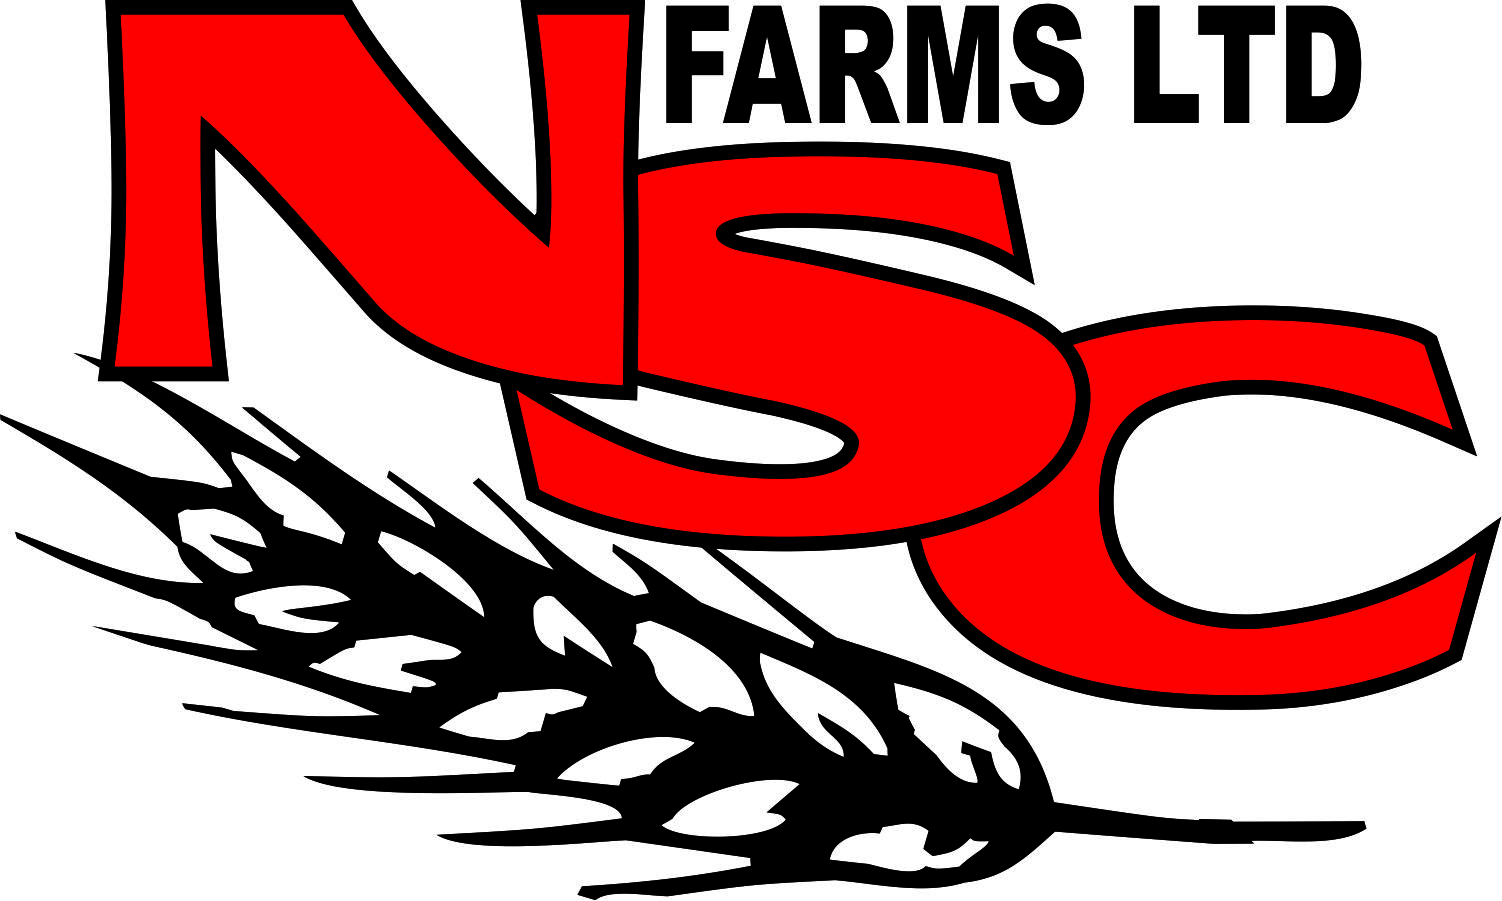 NSC Farms Ltd.